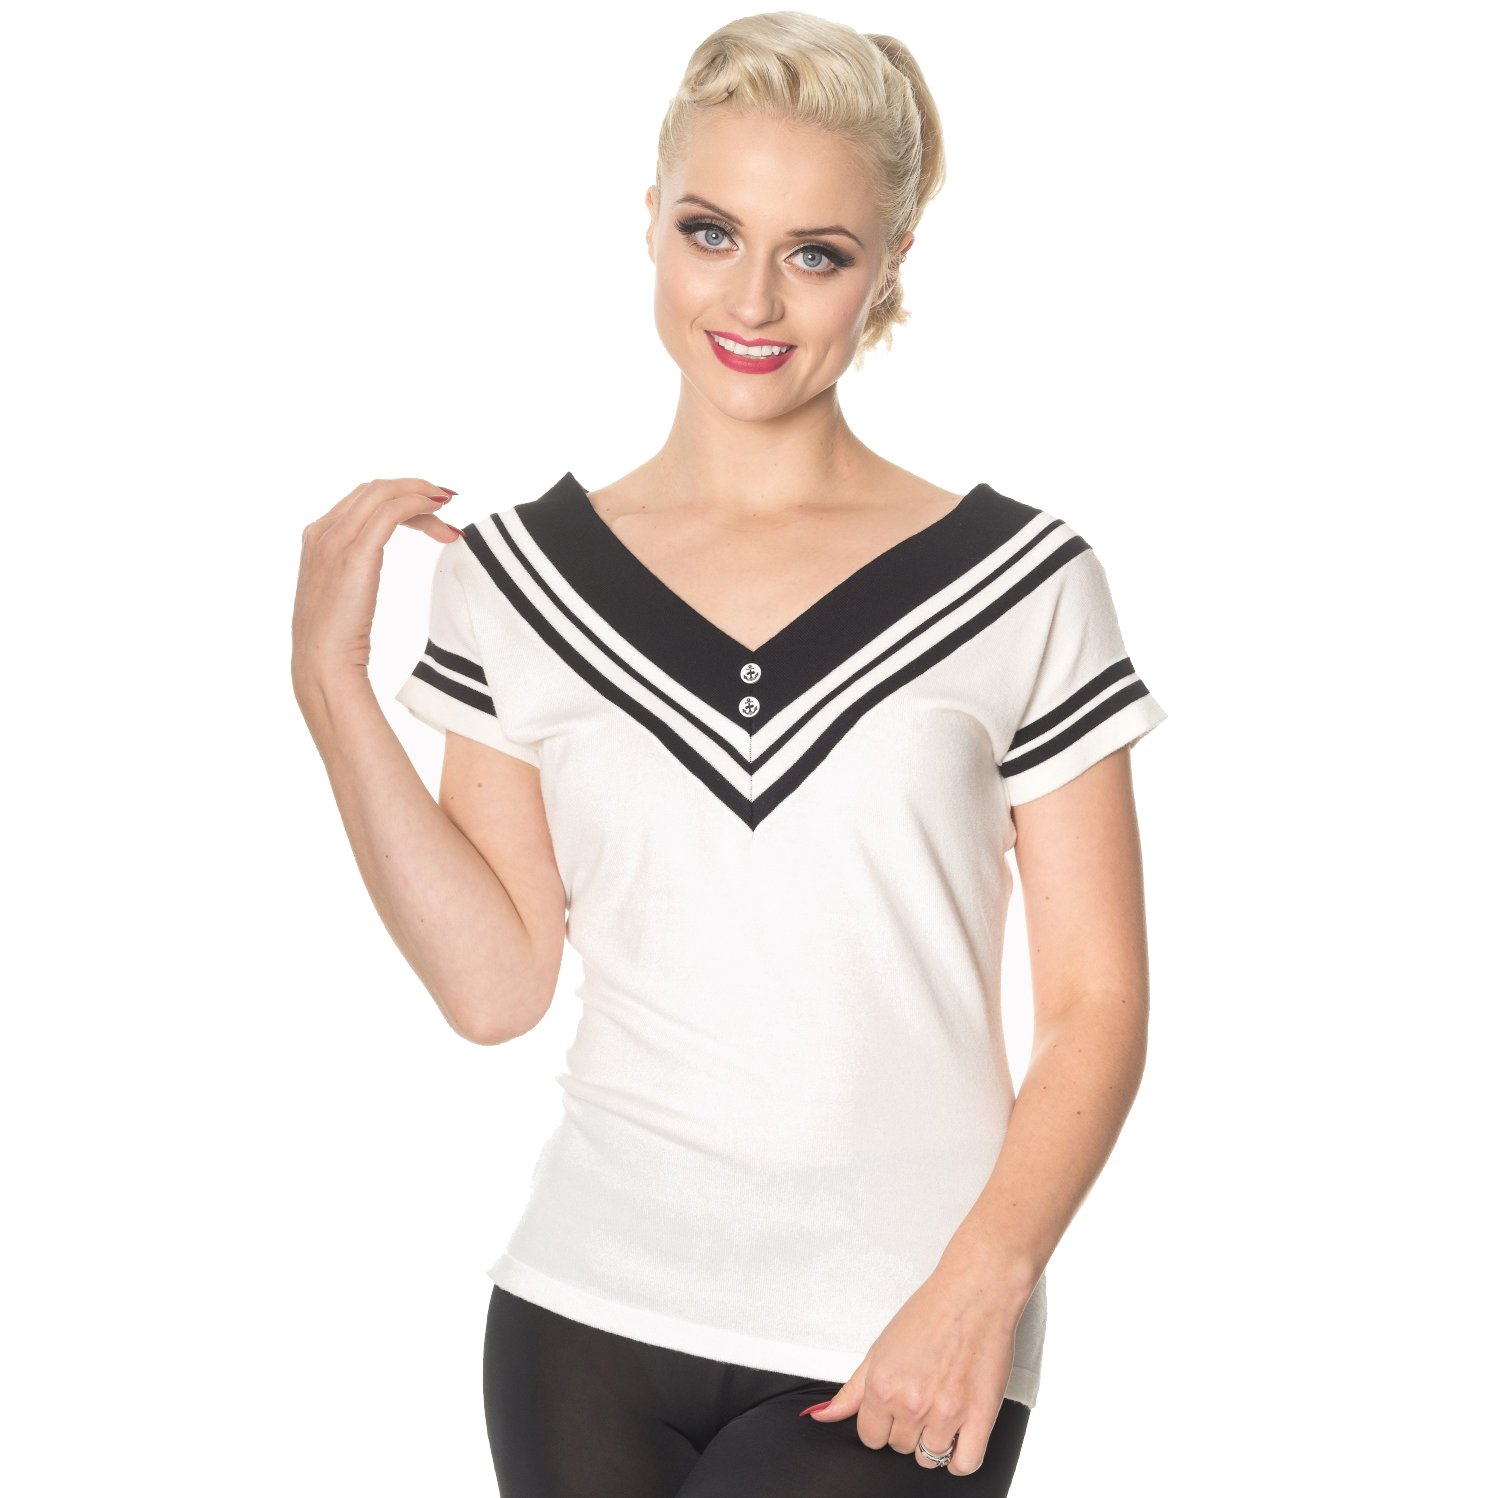 Vintage & Retro Shirts, Halter Tops, Blouses Dancing Days Cedar Nautical Sailor Short Sleeve 1950s Vintage Retro Sweater Top £26.99 AT vintagedancer.com